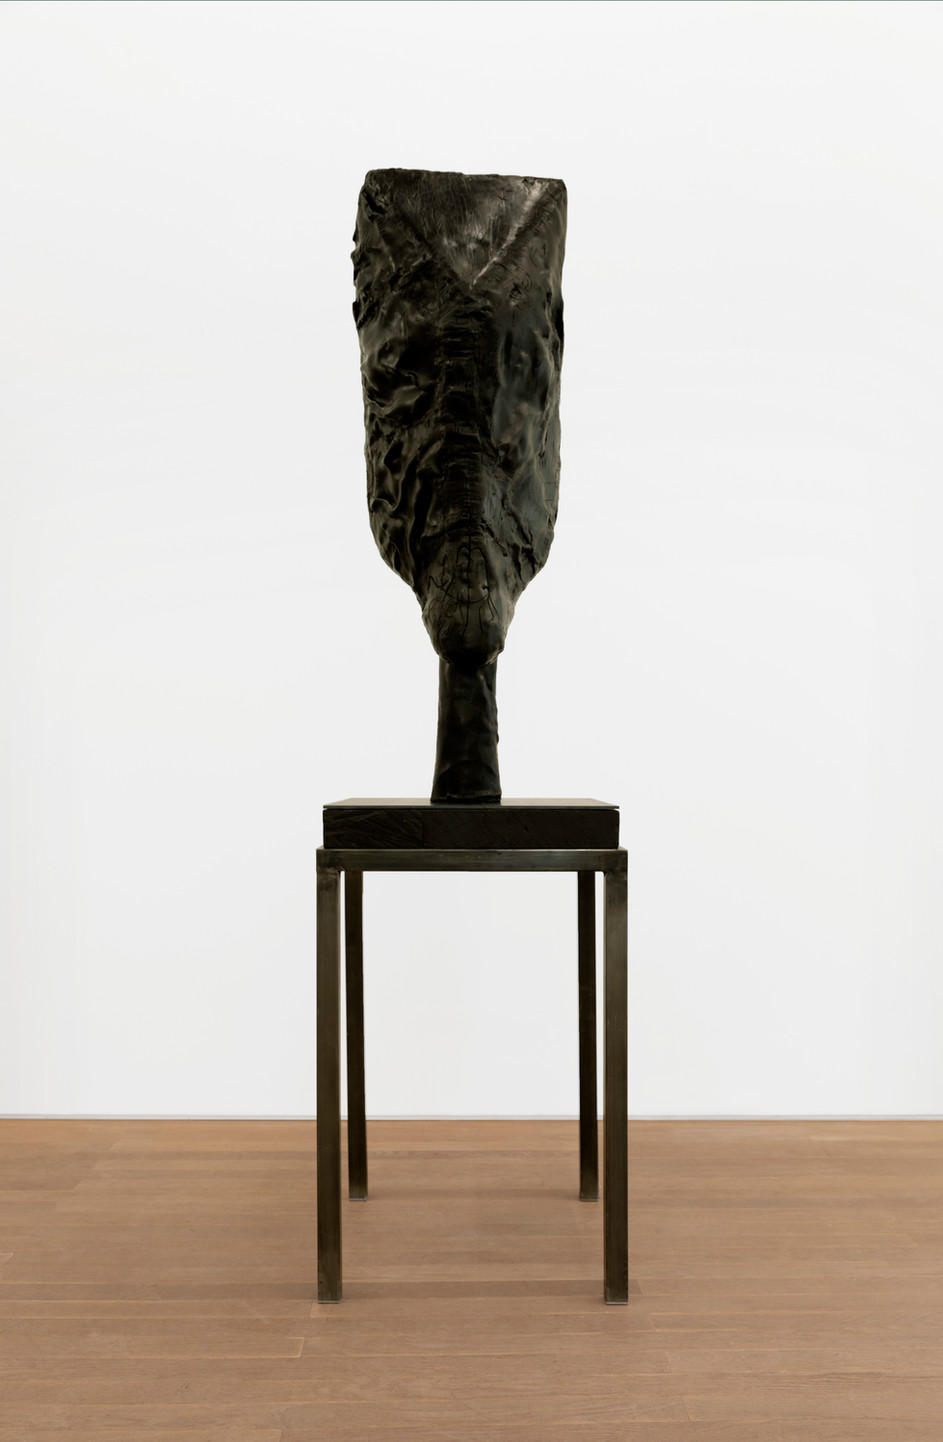 EDWARD LIPSKI Horsehead, 2020 rubber, wood, steel 128 x 40 x 33 cm (sculpture) 89 x 56 x 56 cm (plinth) unique